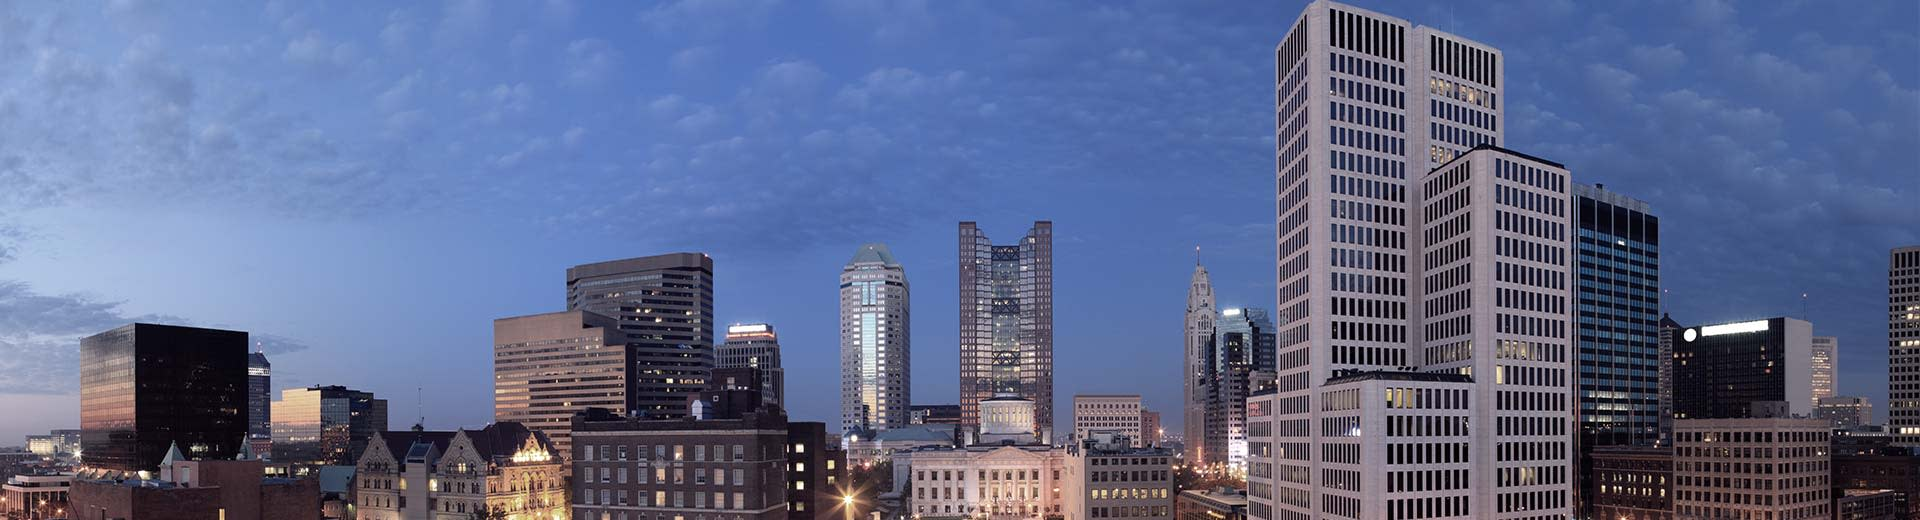 A range of high rise buildings in the downtown area of Columbus